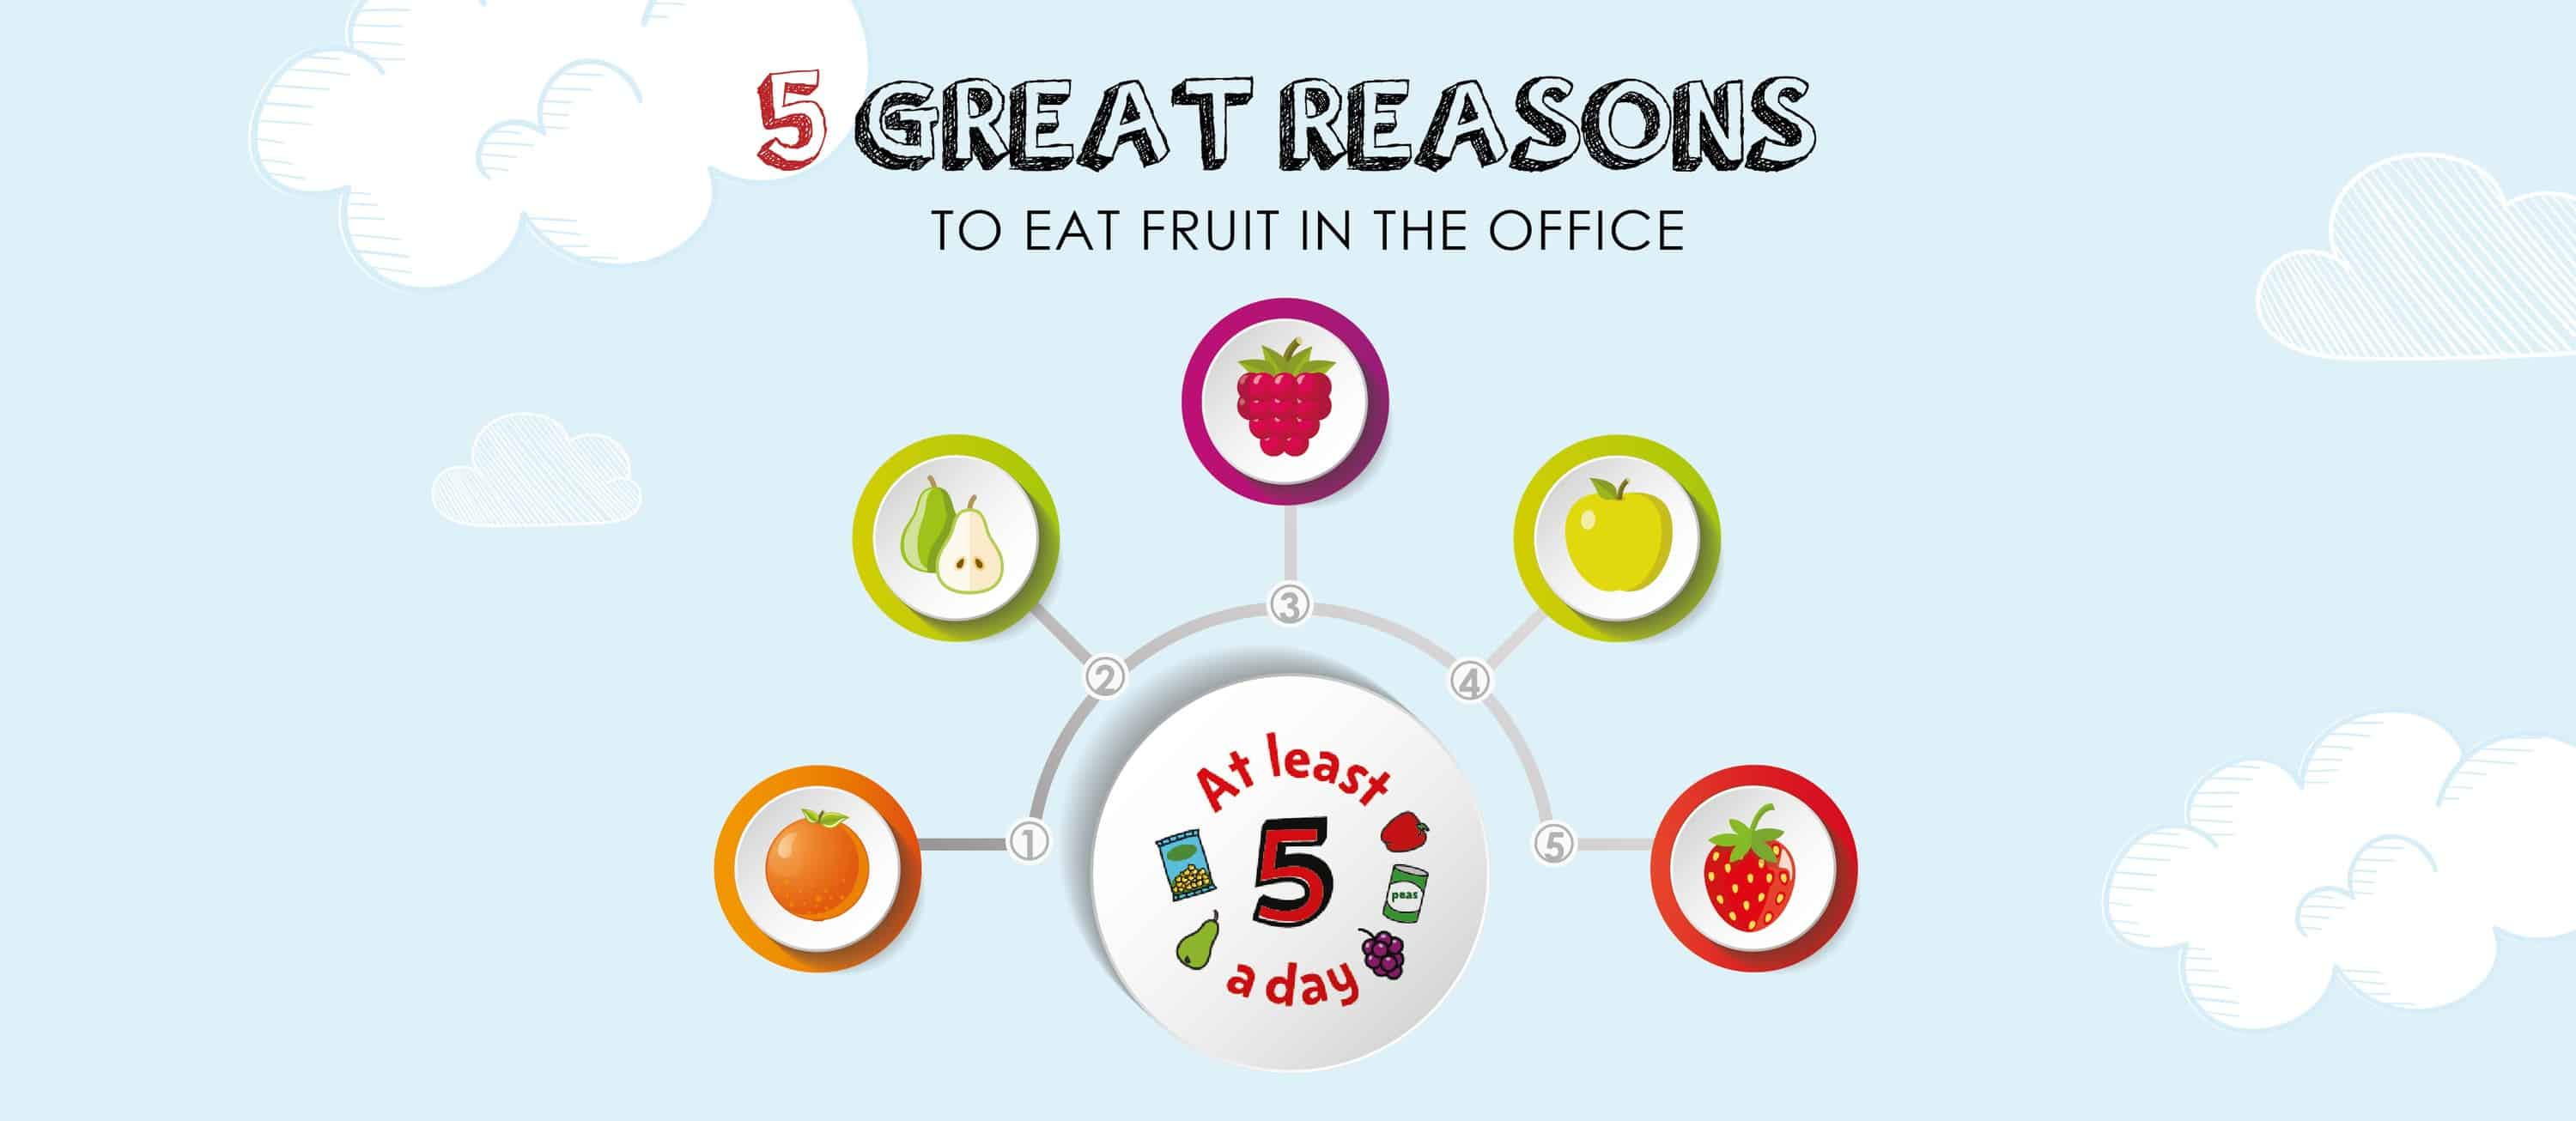 eating fruit in the office